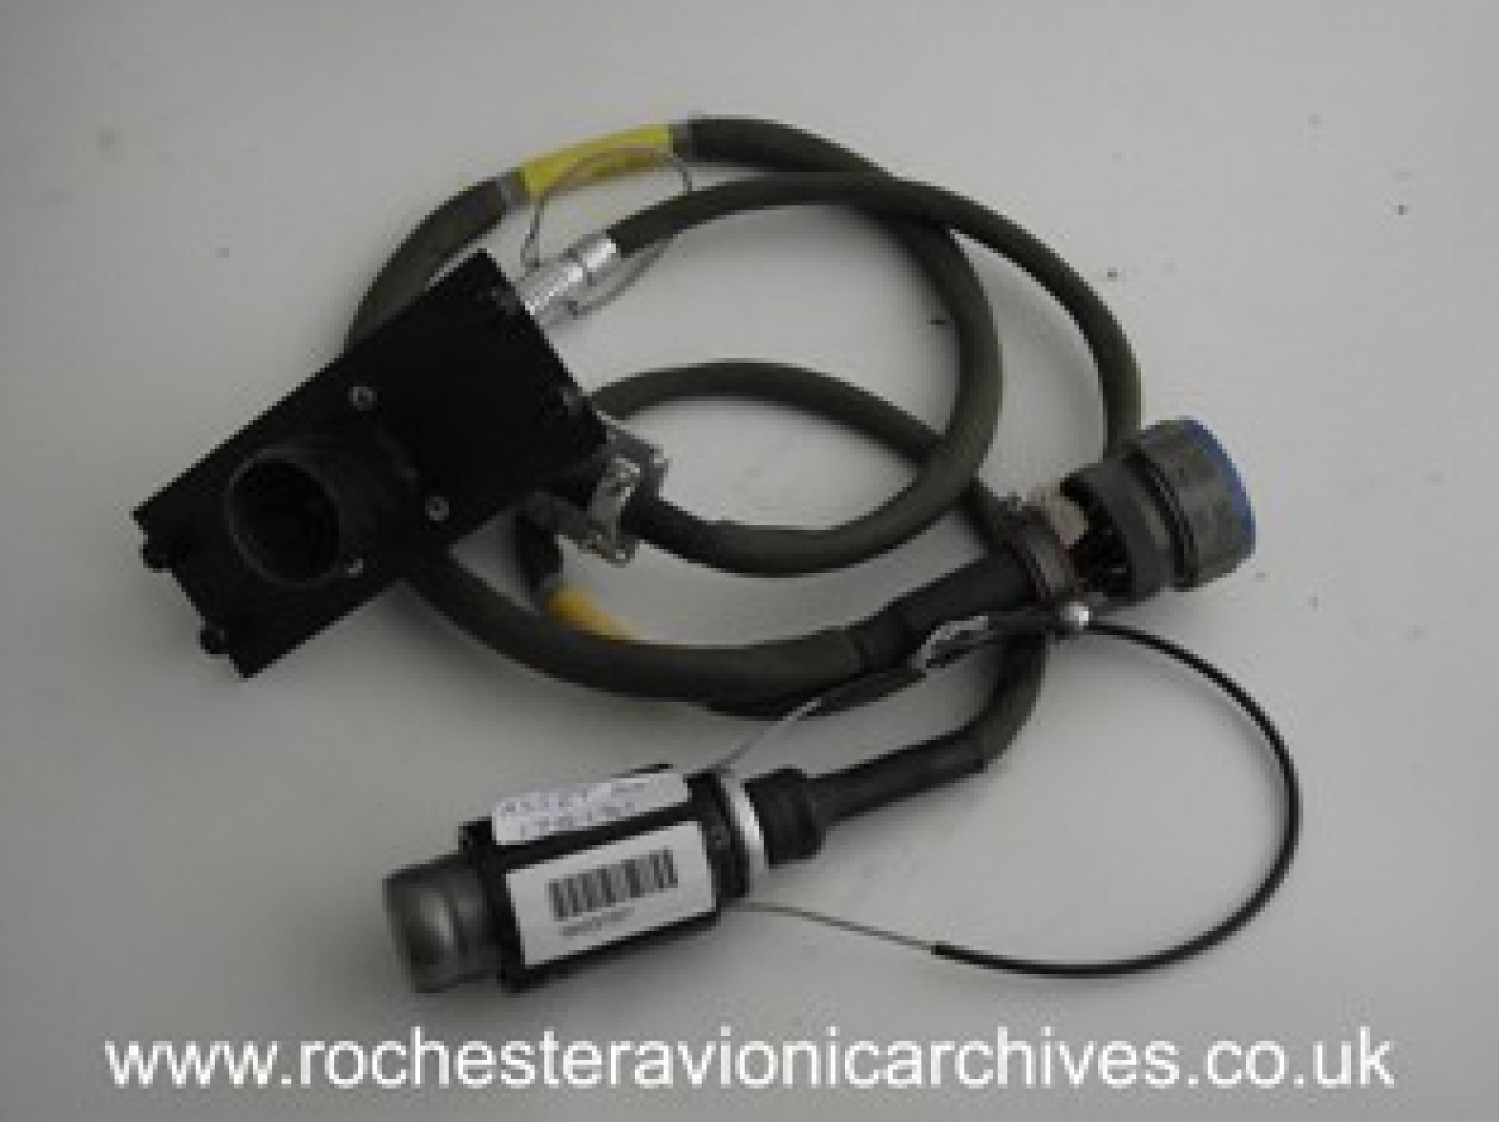 HMD Quick Release Cable Assembly